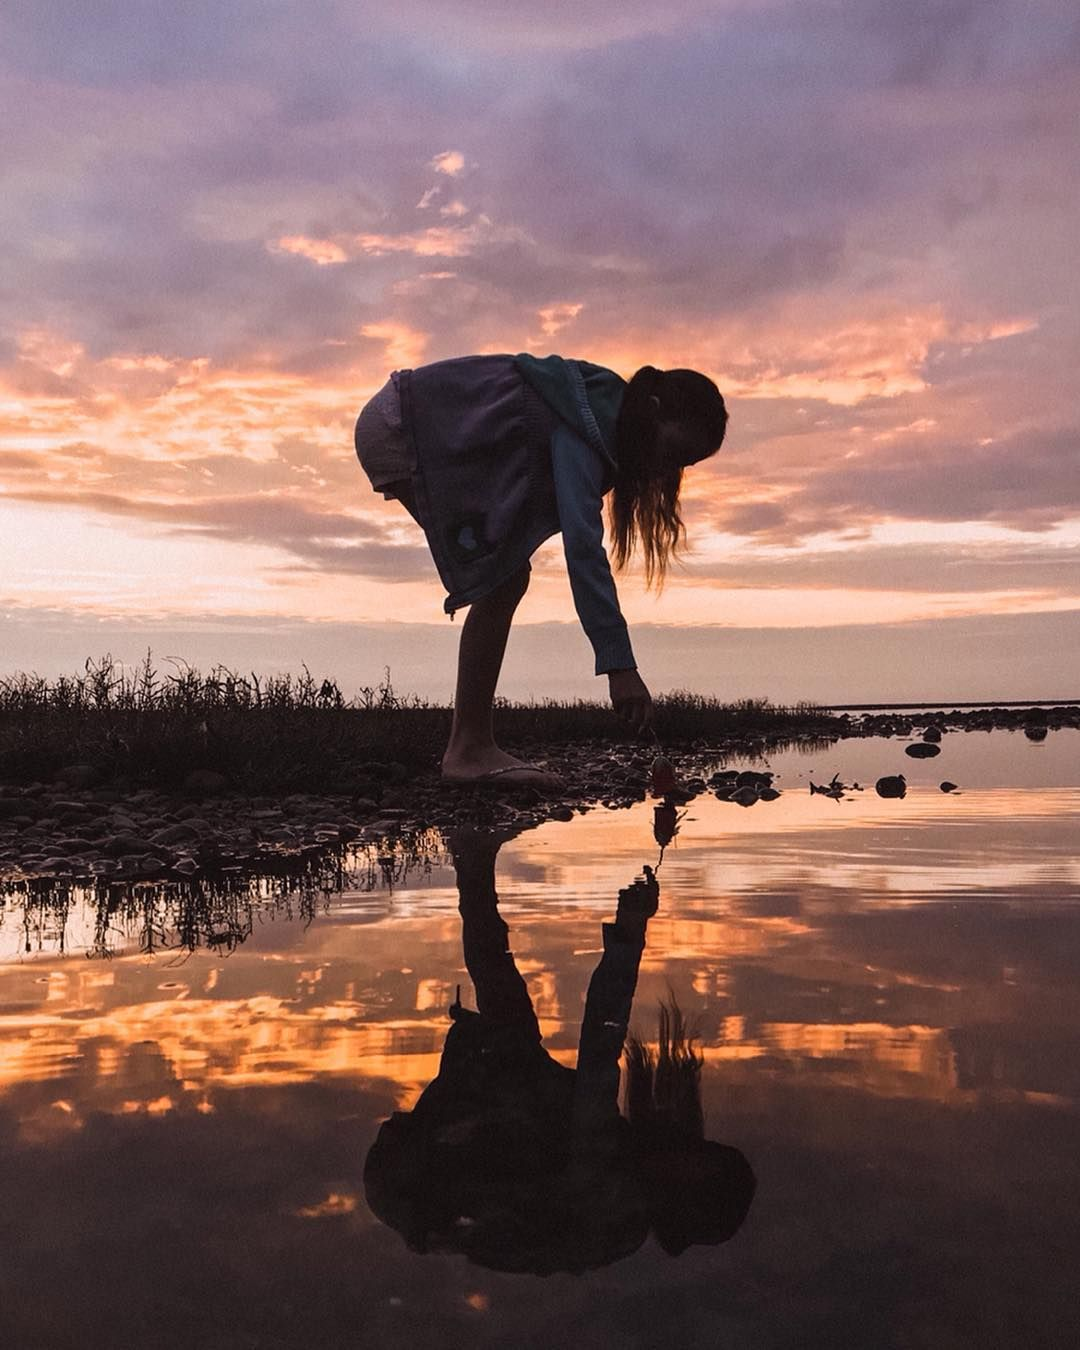 Click to see 5 Tips To Take Amazing Shots With Your iPhone! Photo Captured by Braided Brunette #reflectionphoto #sunset #iphonephotography #motherhood